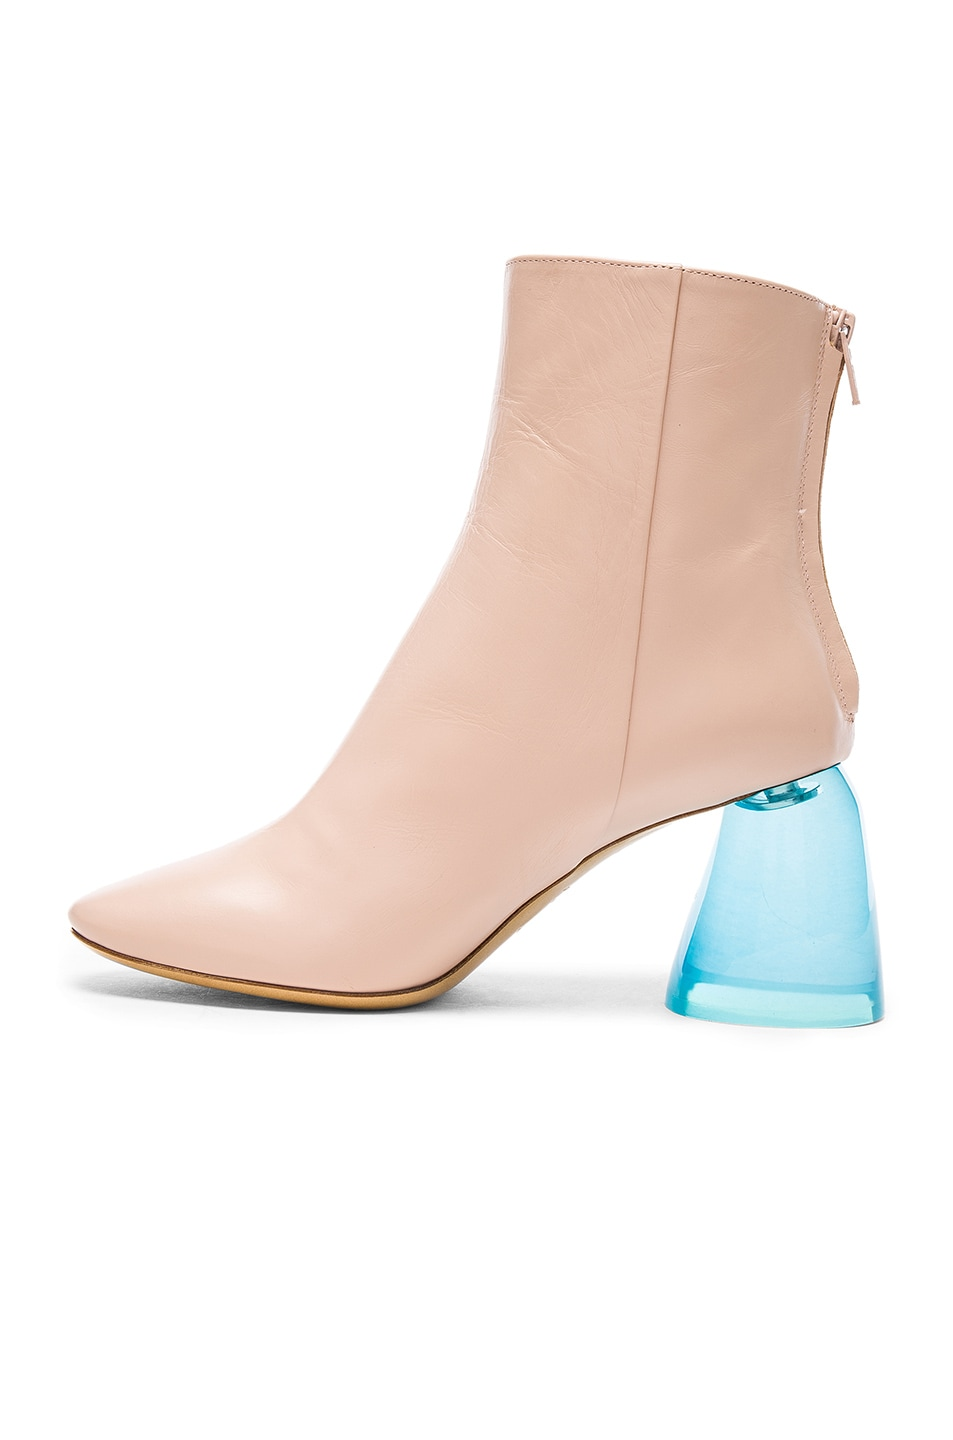 Image 5 of Ellery Leather Sacred Booties in Nude & Aqua